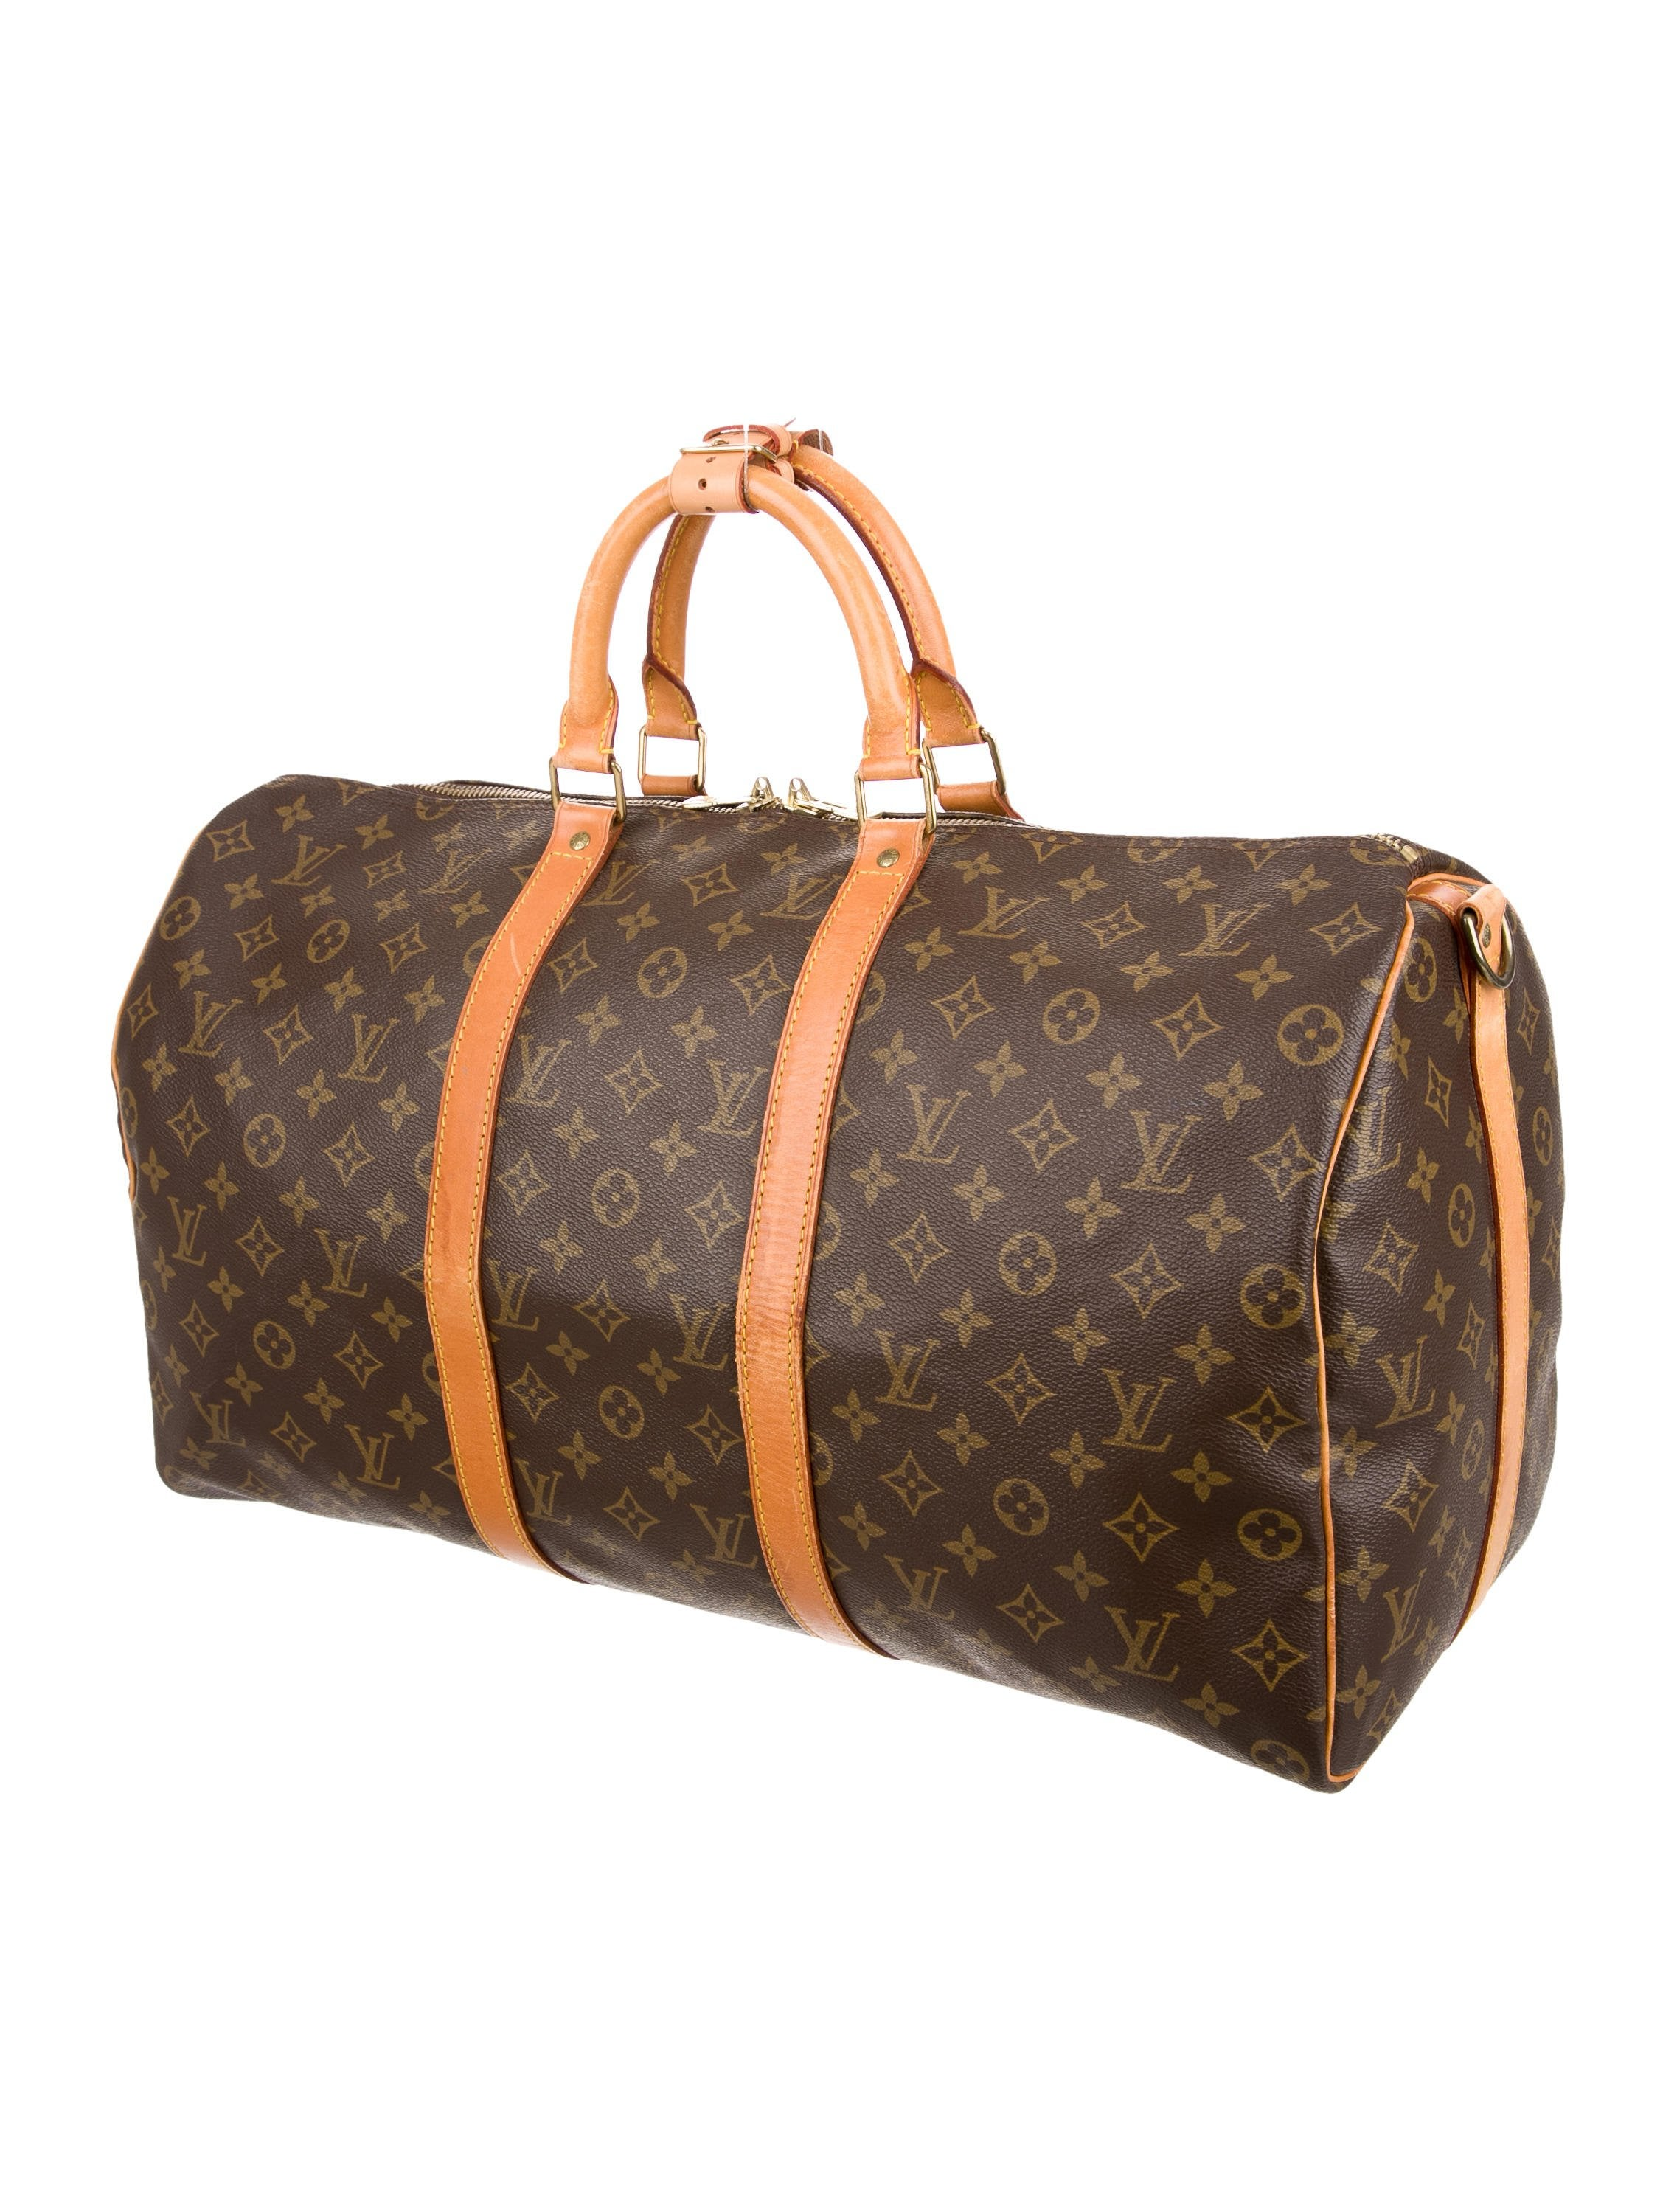 louis vuitton monogram keepall 50 handbags lou125844 the realreal. Black Bedroom Furniture Sets. Home Design Ideas